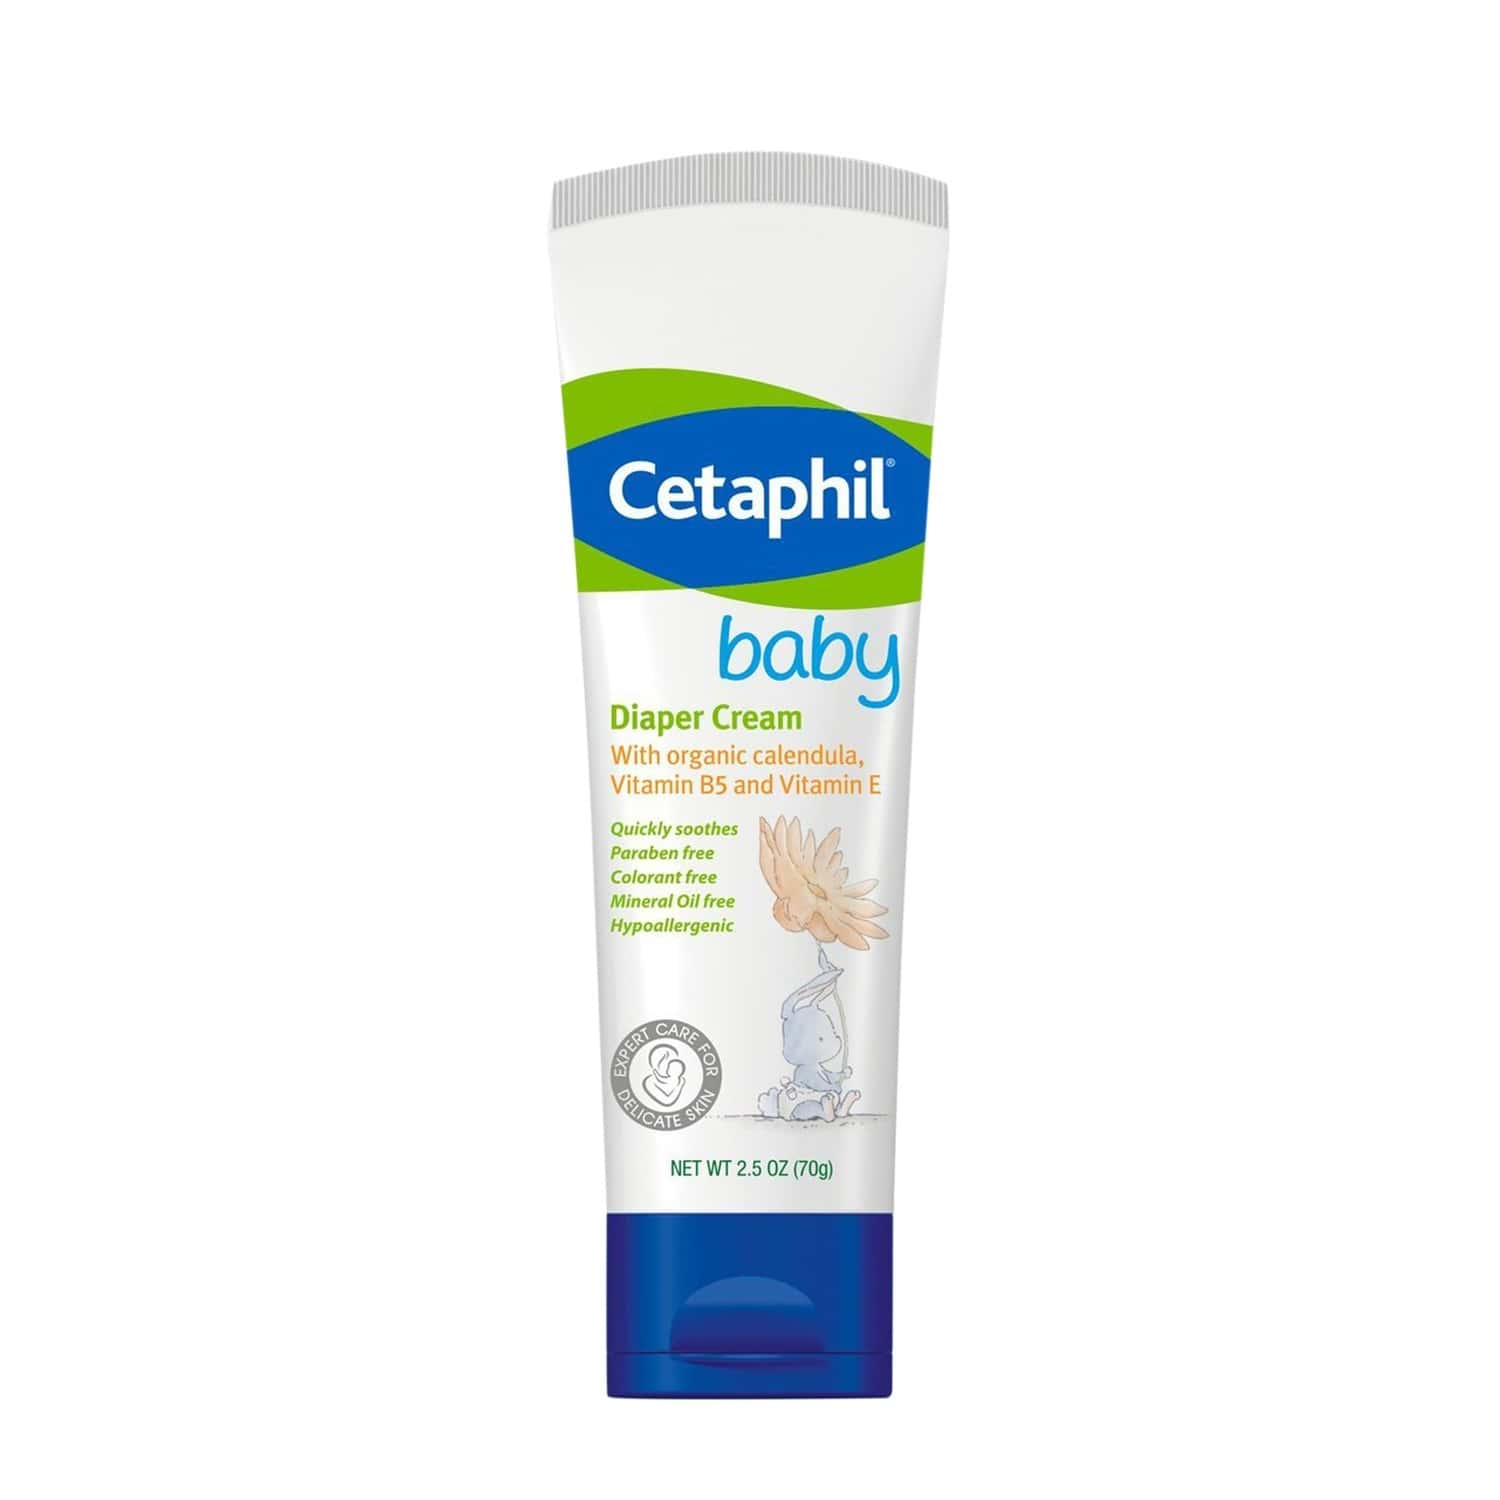 Cetaphil Baby Diaper Cream - 70g